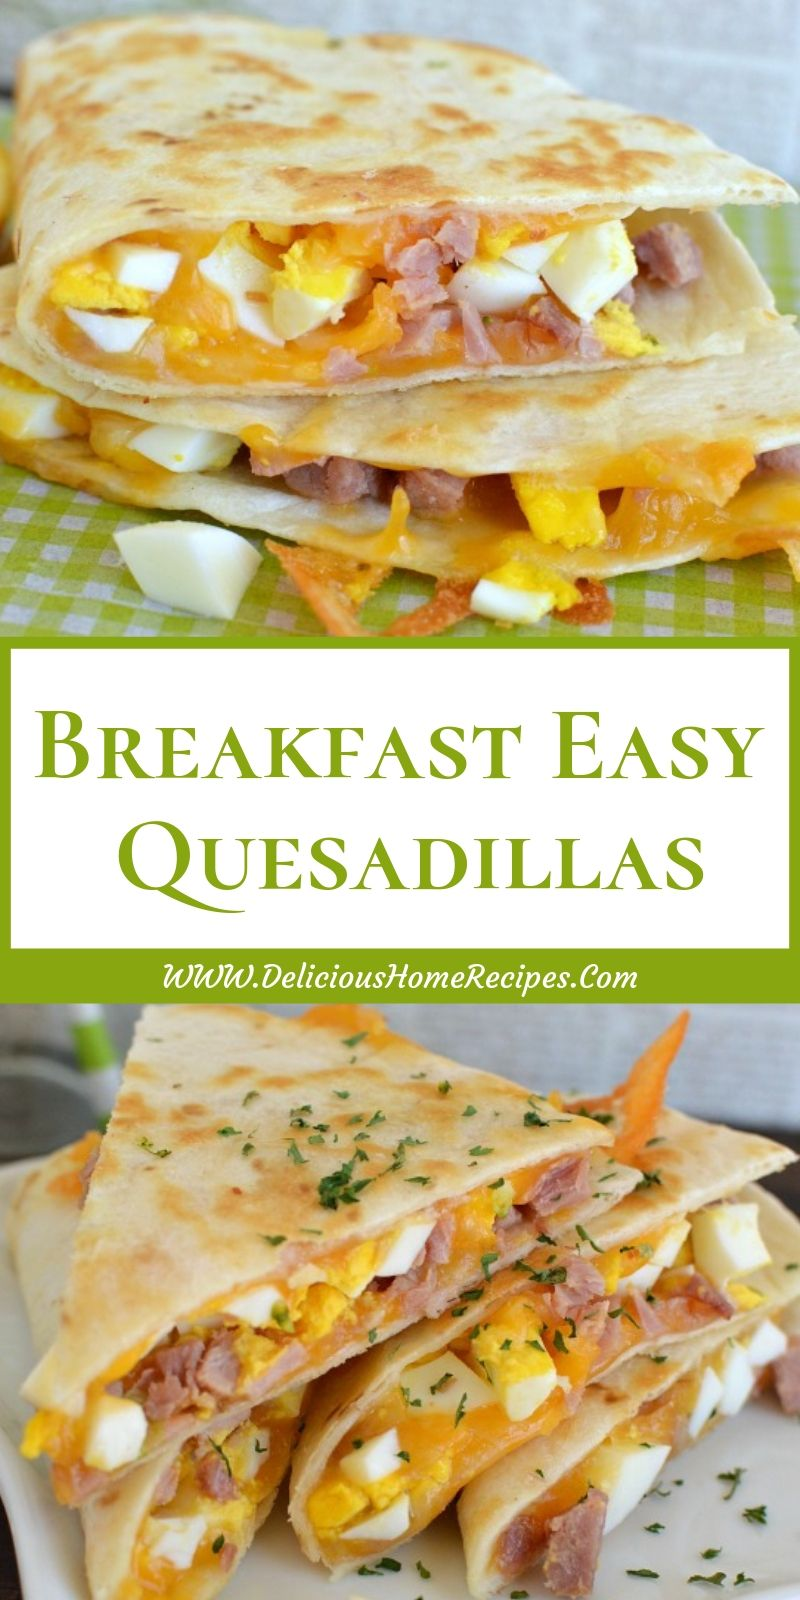 Breakfast Easy Quesadillas images